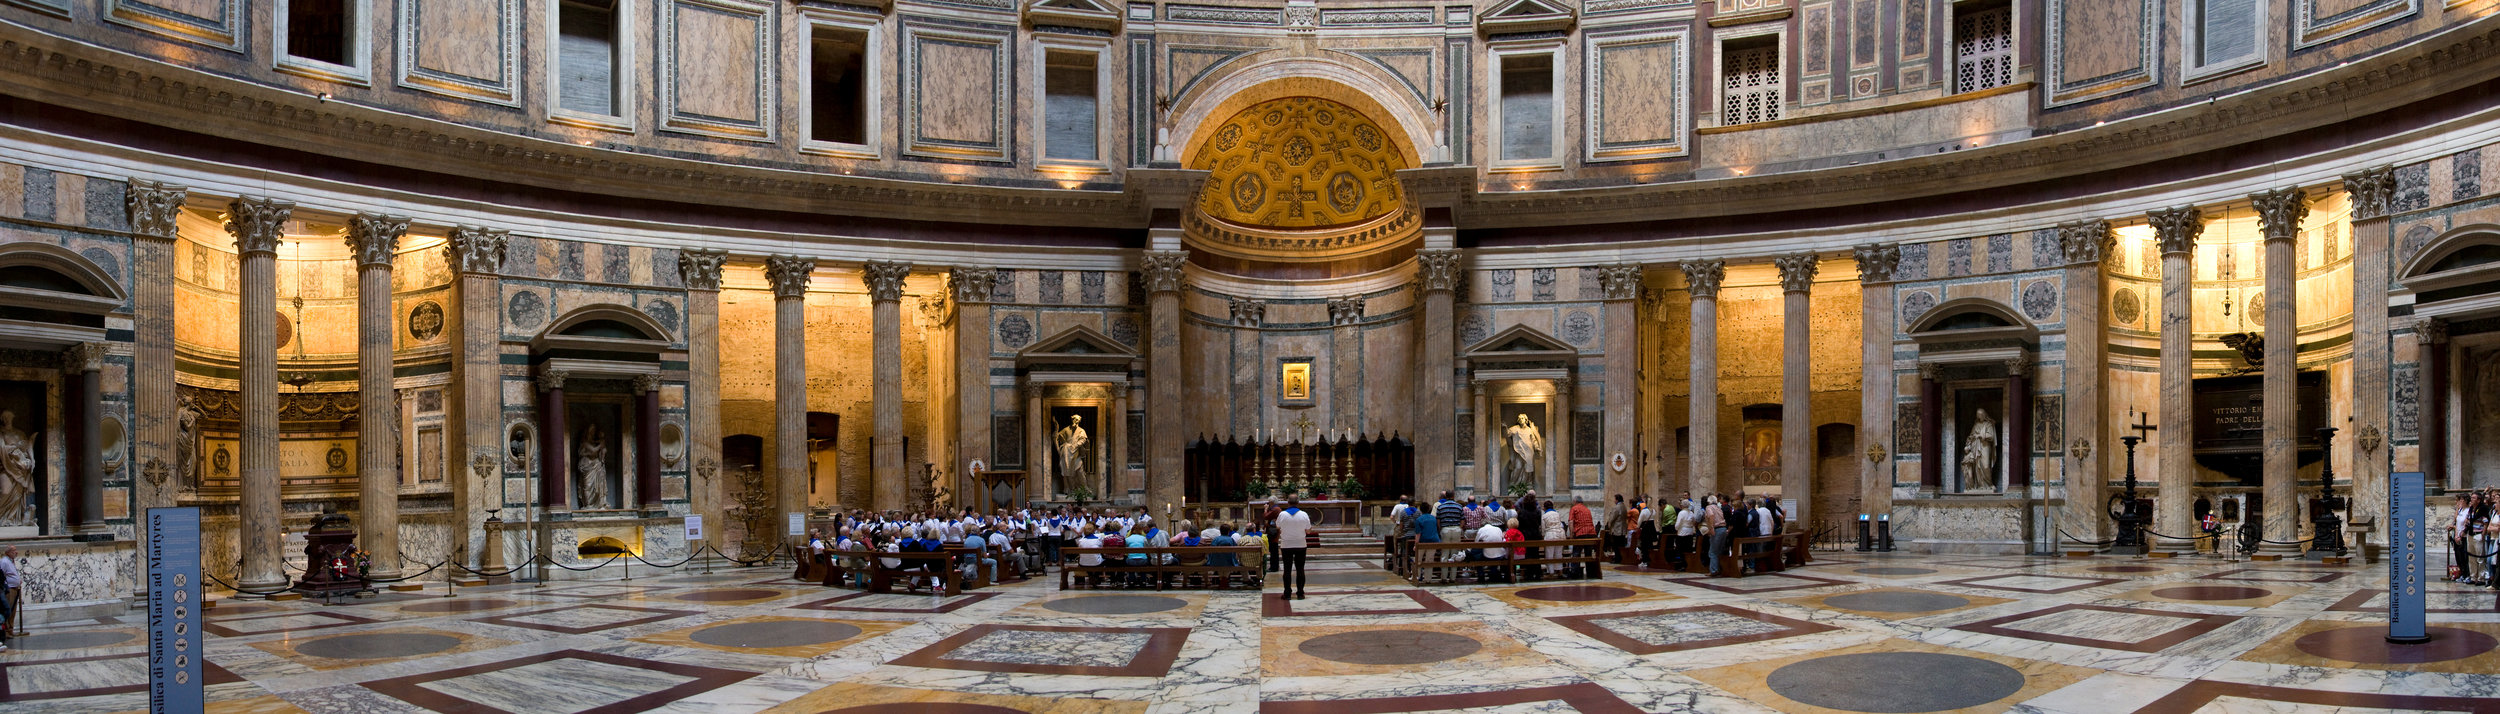 Panorama of the Pantheon, CC BY-SA 3.0 by Maros M r a z via  Wikimedia . Click to enlarge.